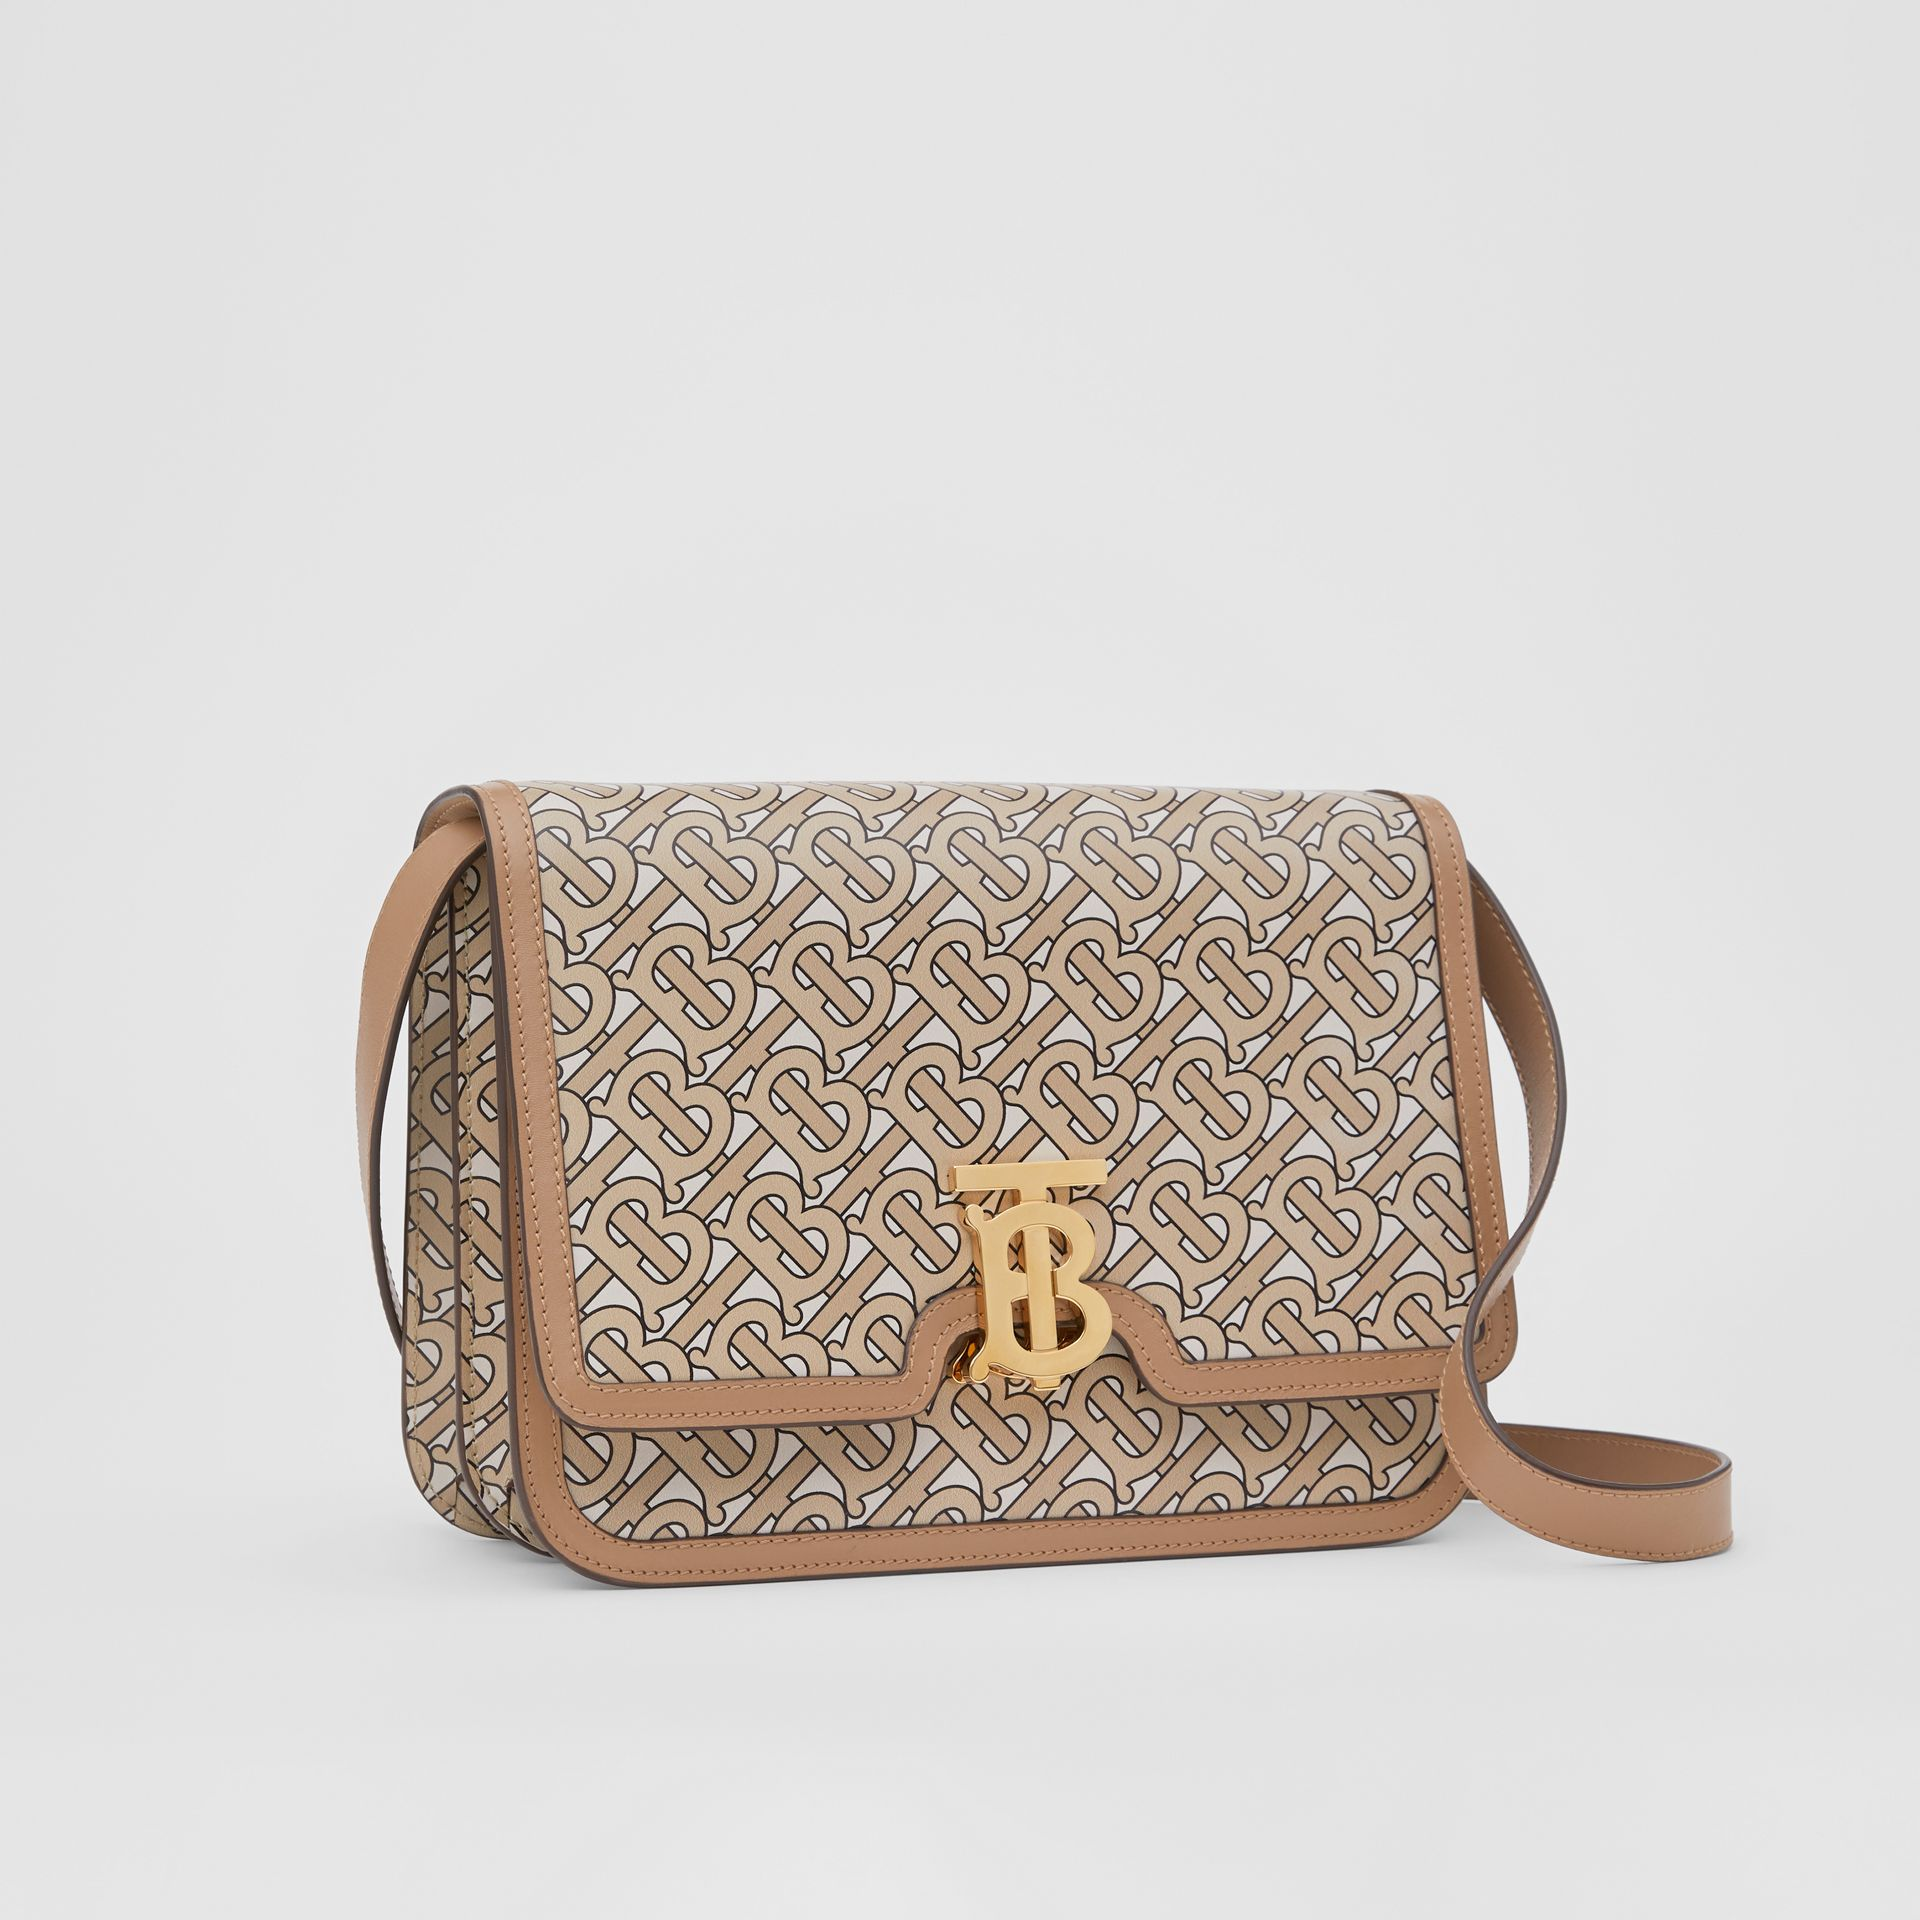 Medium Monogram Print Leather TB Bag in Beige - Women | Burberry - gallery image 6